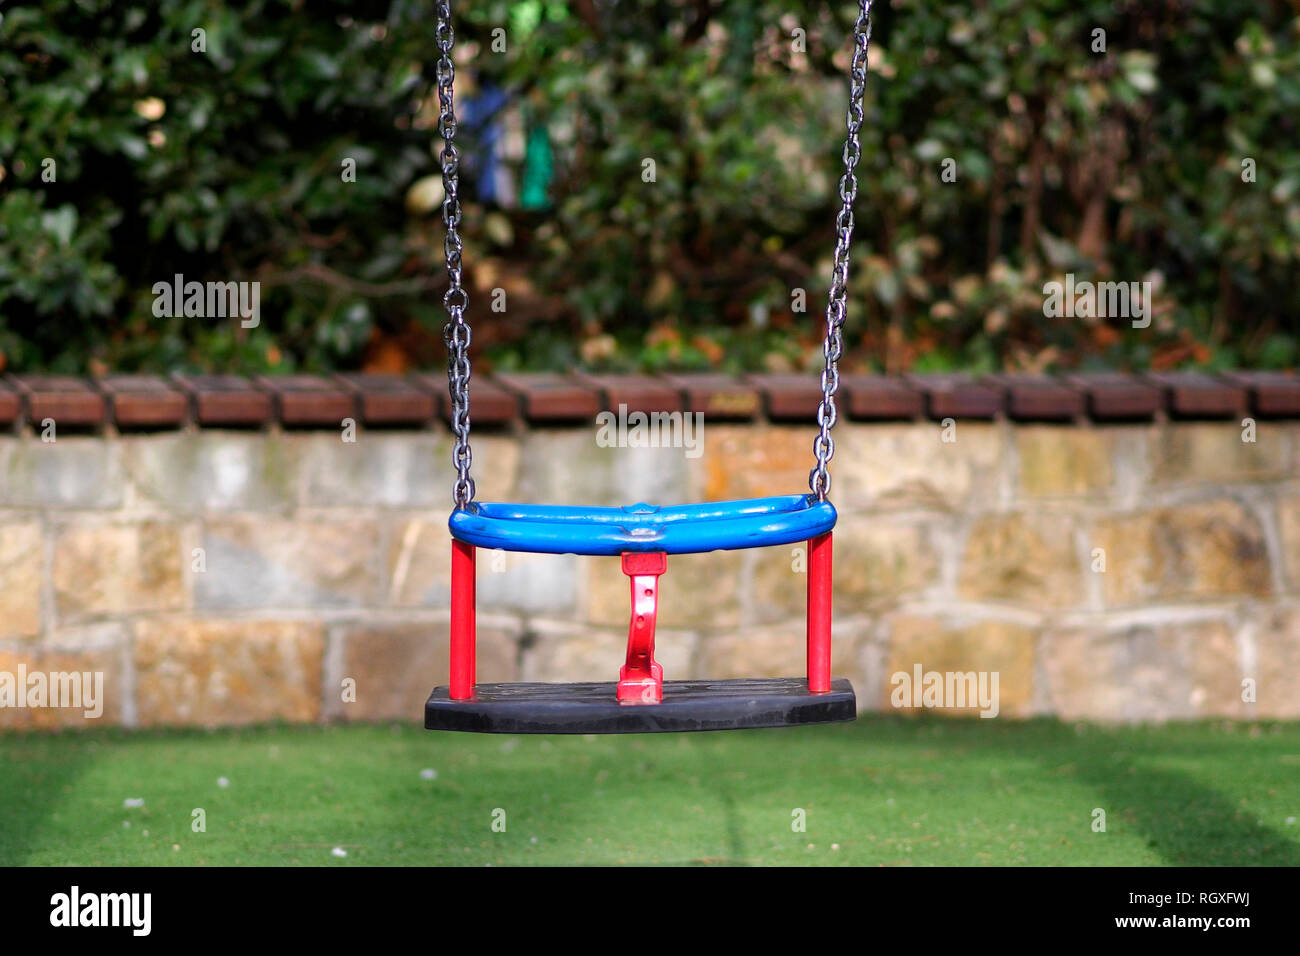 A swing in the playground. Stock Photo